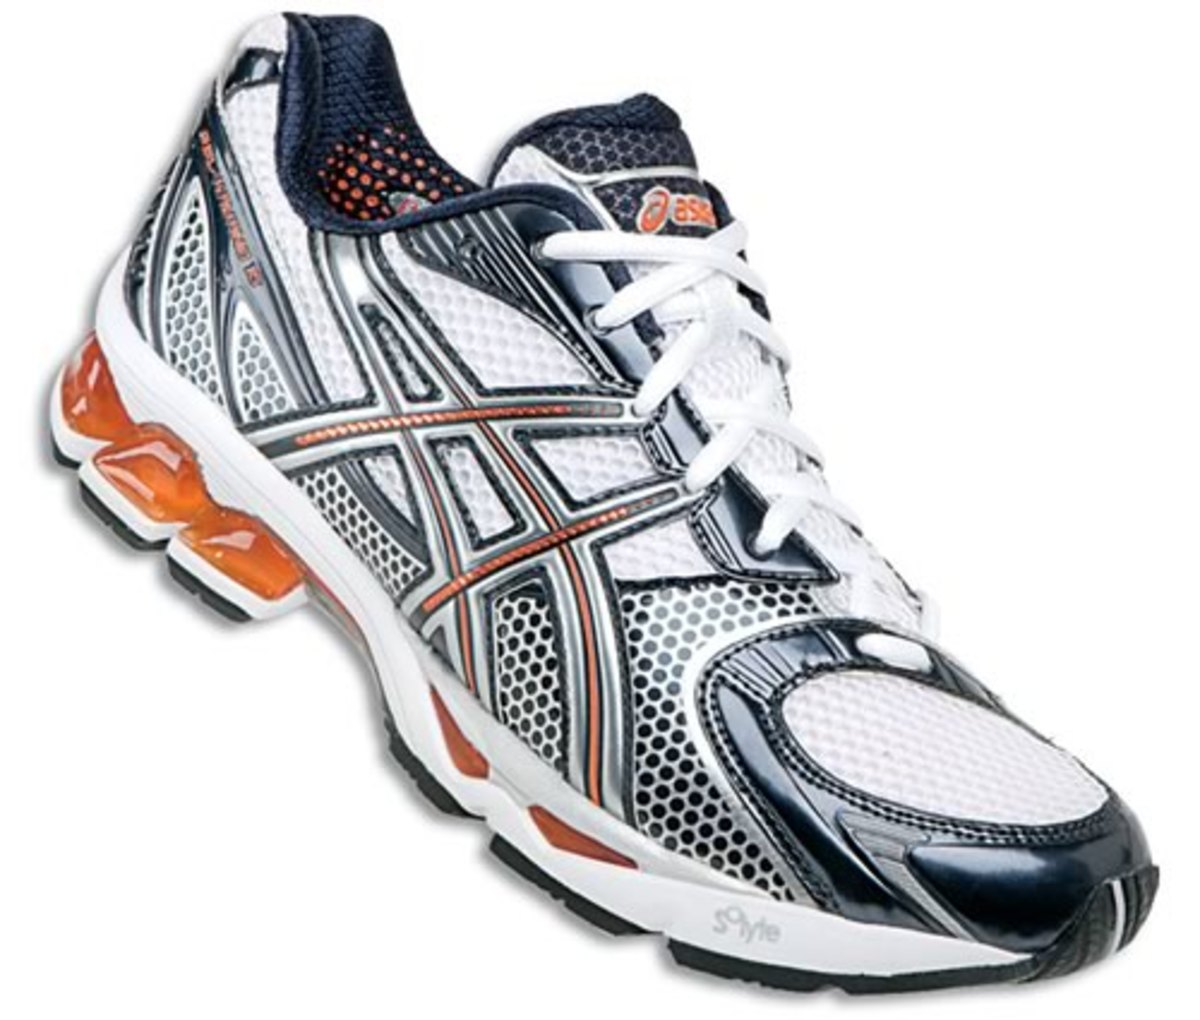 42ef783a4e Its no surprise that the AsicsGel Kayano has already seen 14 iterations so  you better believe the latest version stays true to the DNA while offering  a ...